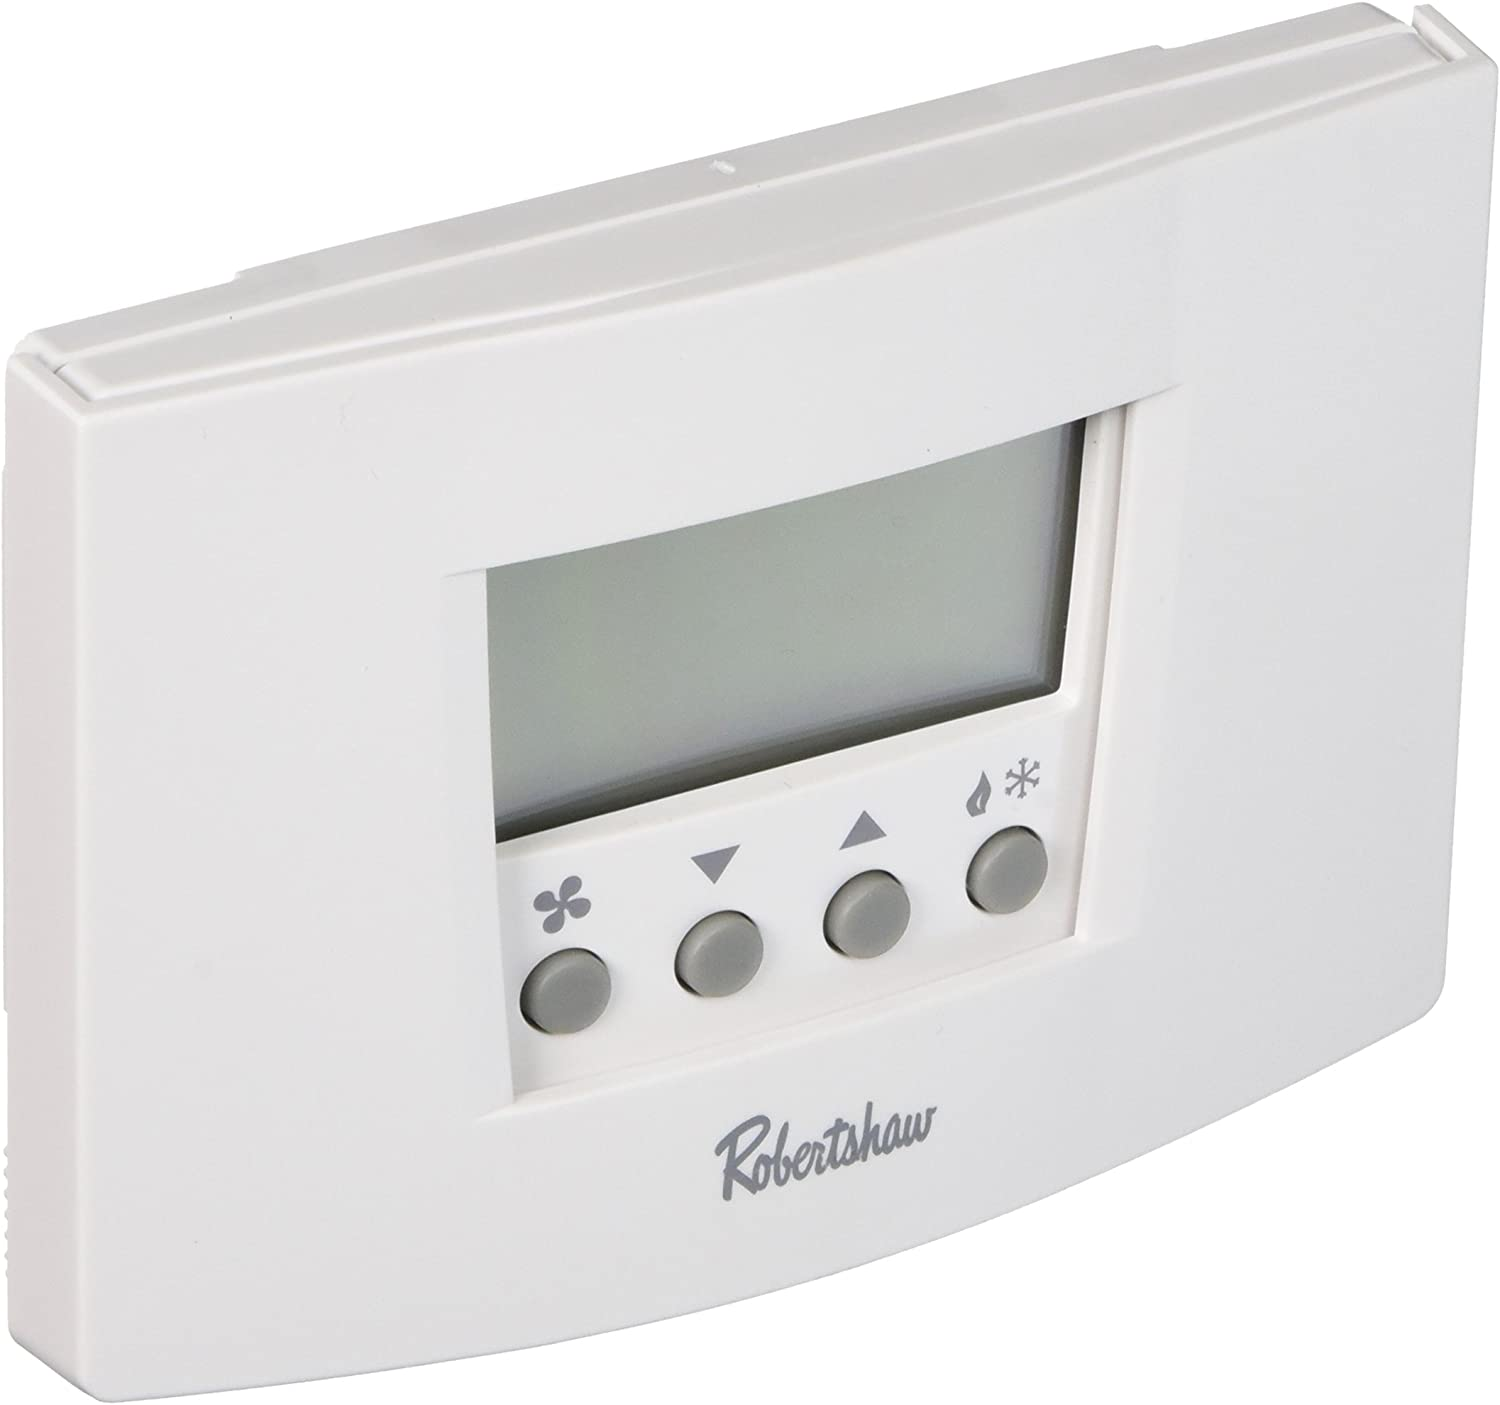 Best Thermostats For Pellet Stoves  U2013 2020 Guide